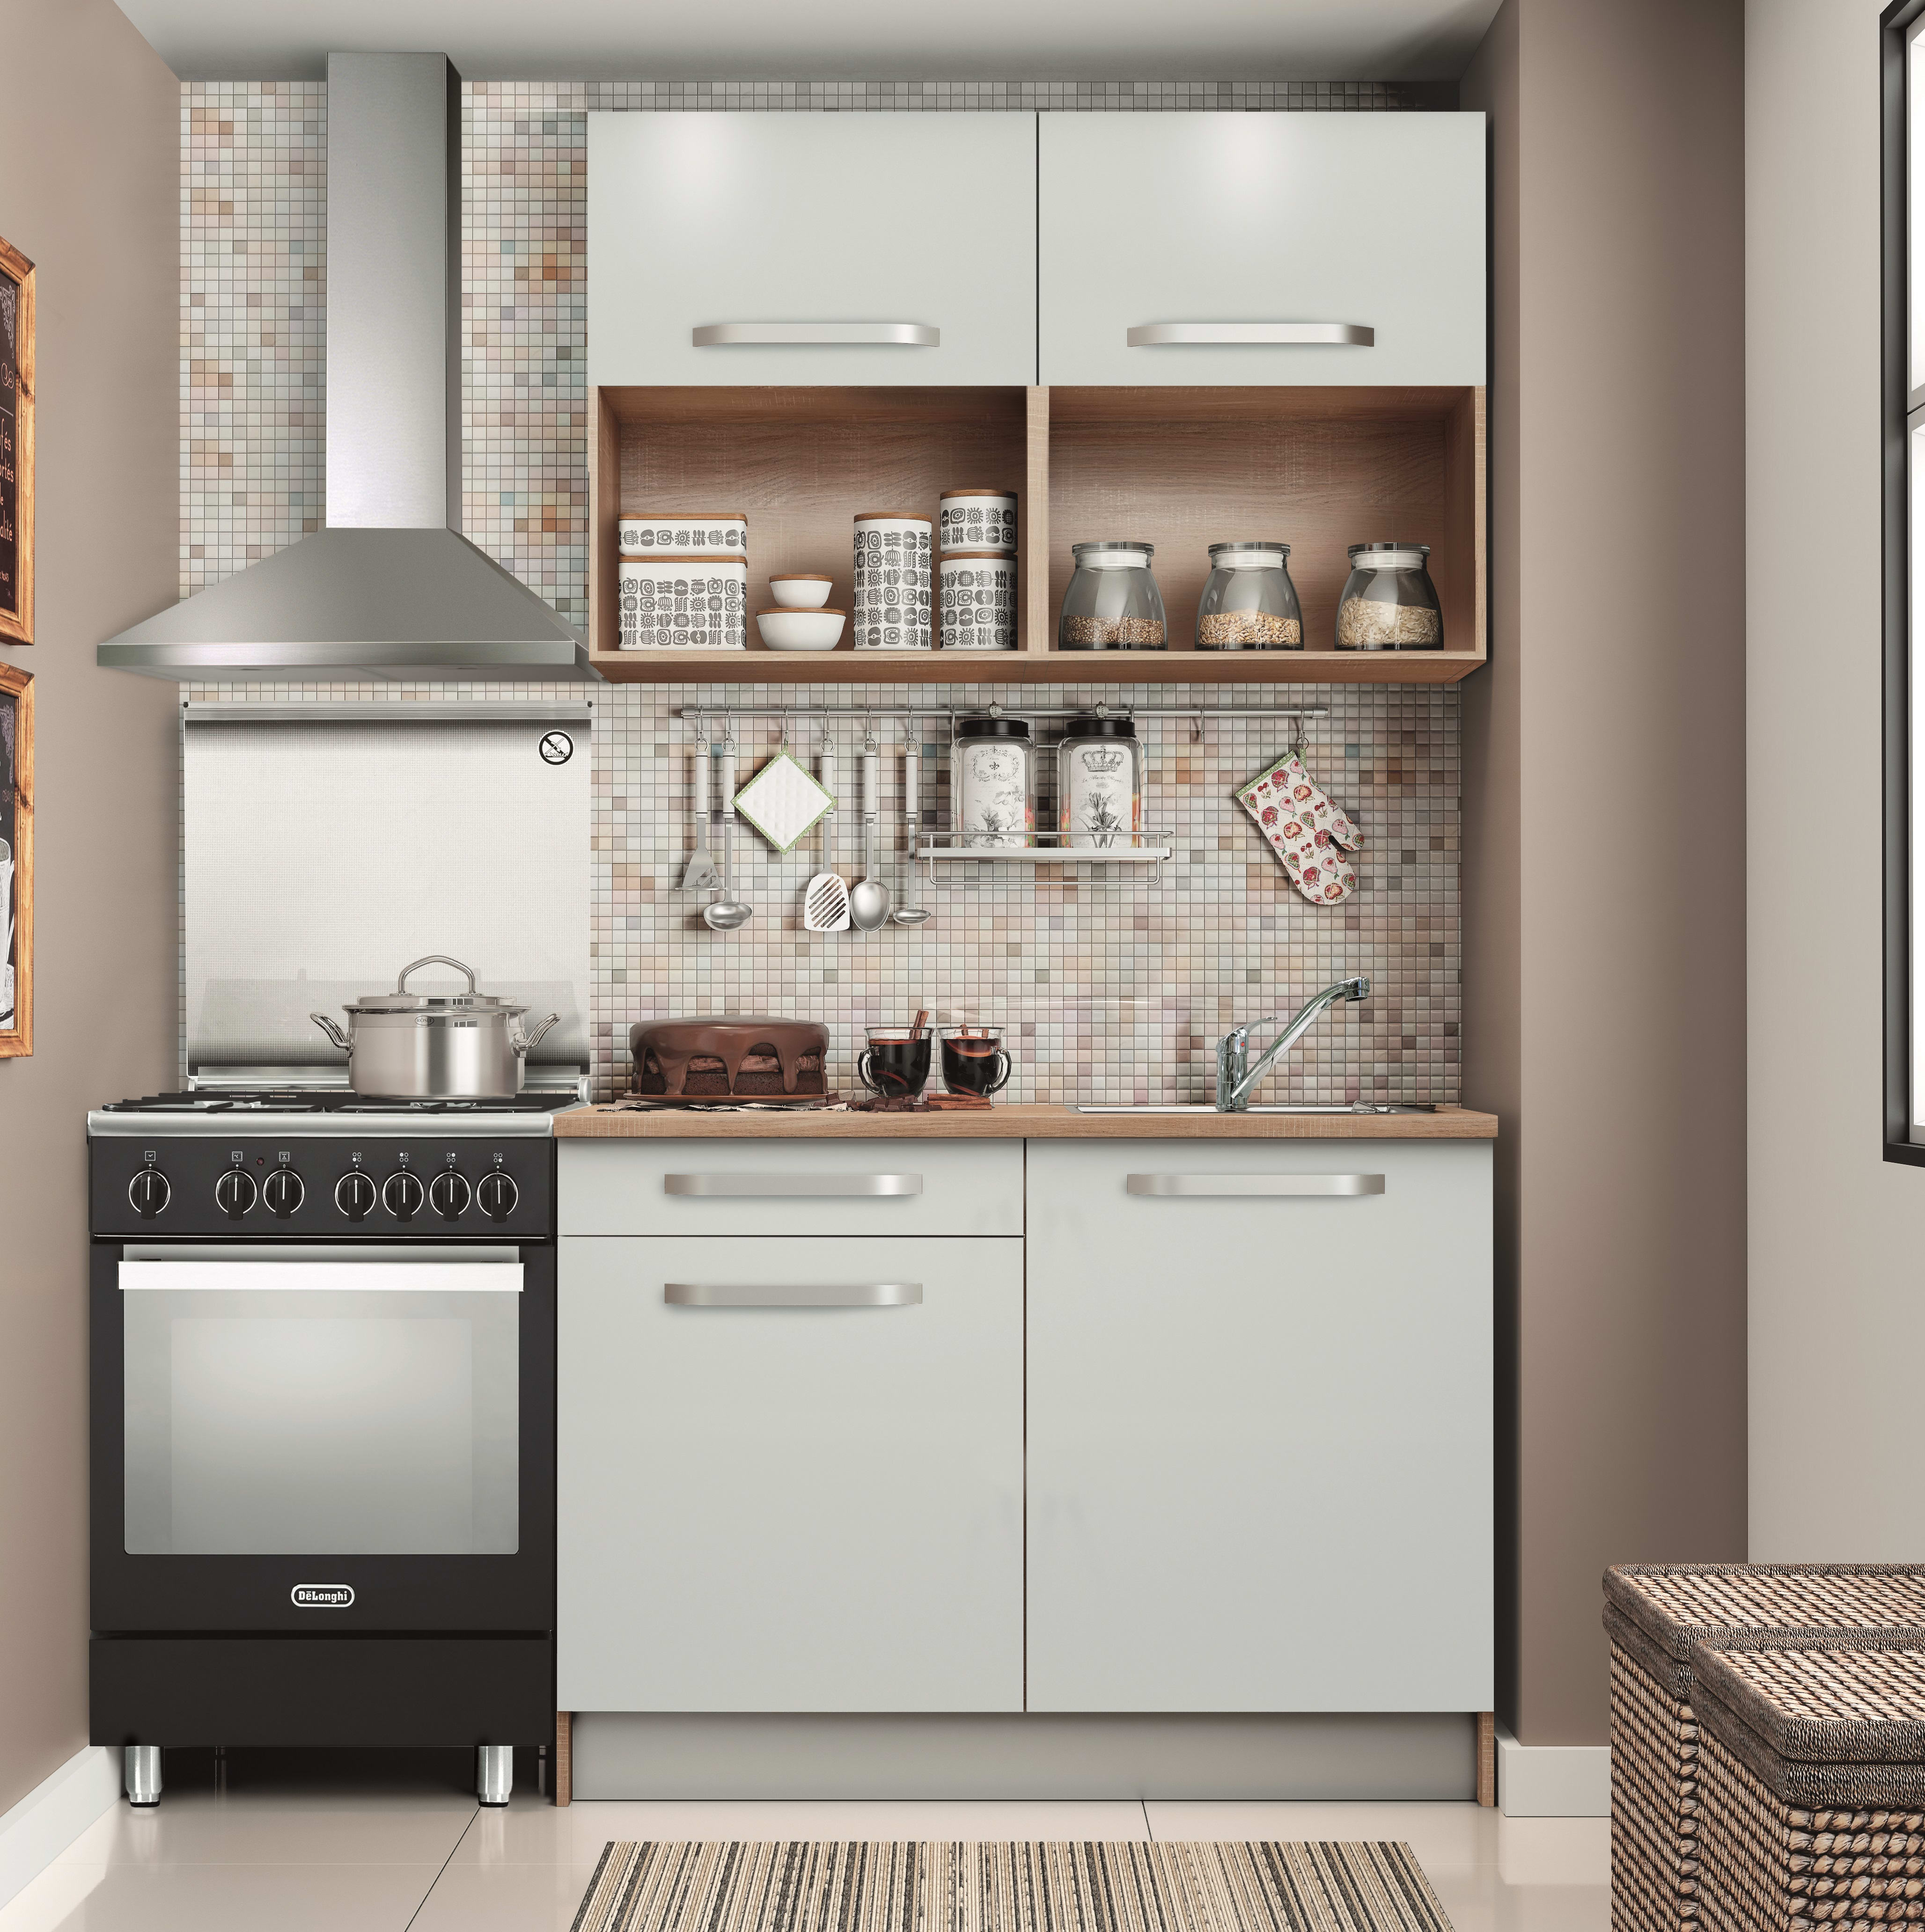 Leroy Merlin Cucine Componibili Catalogo.Cucina In Kit One Bianco L 120 Cm